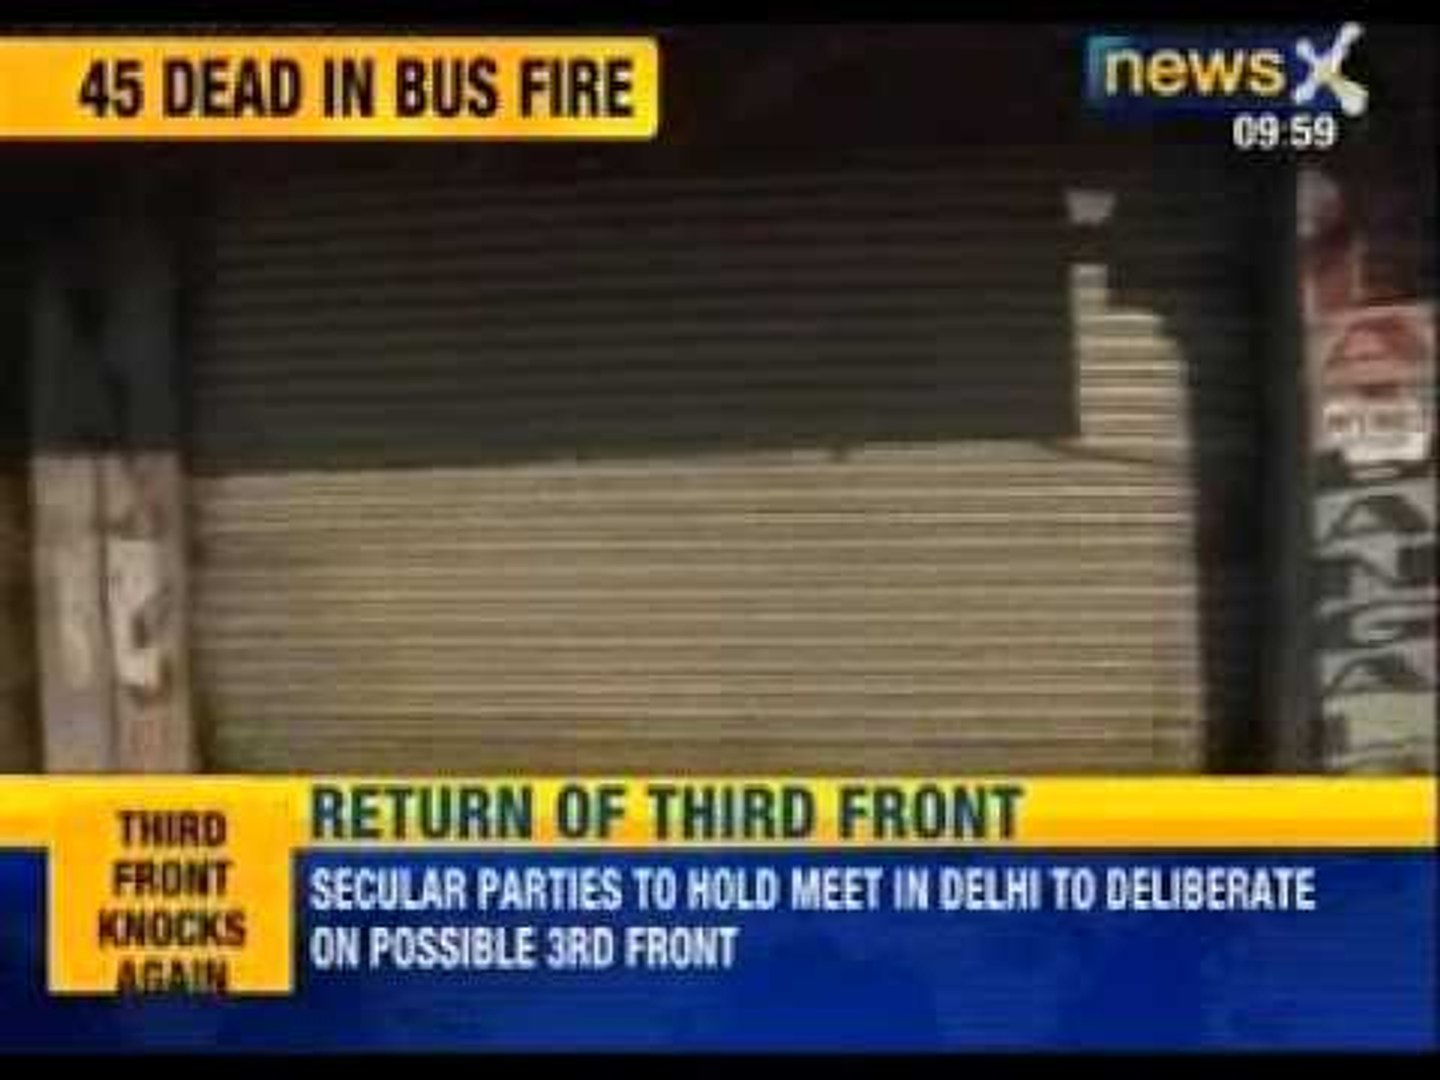 45 feared dead as bus hits oil tanker, catches fire in Andhra Pradesh - News X